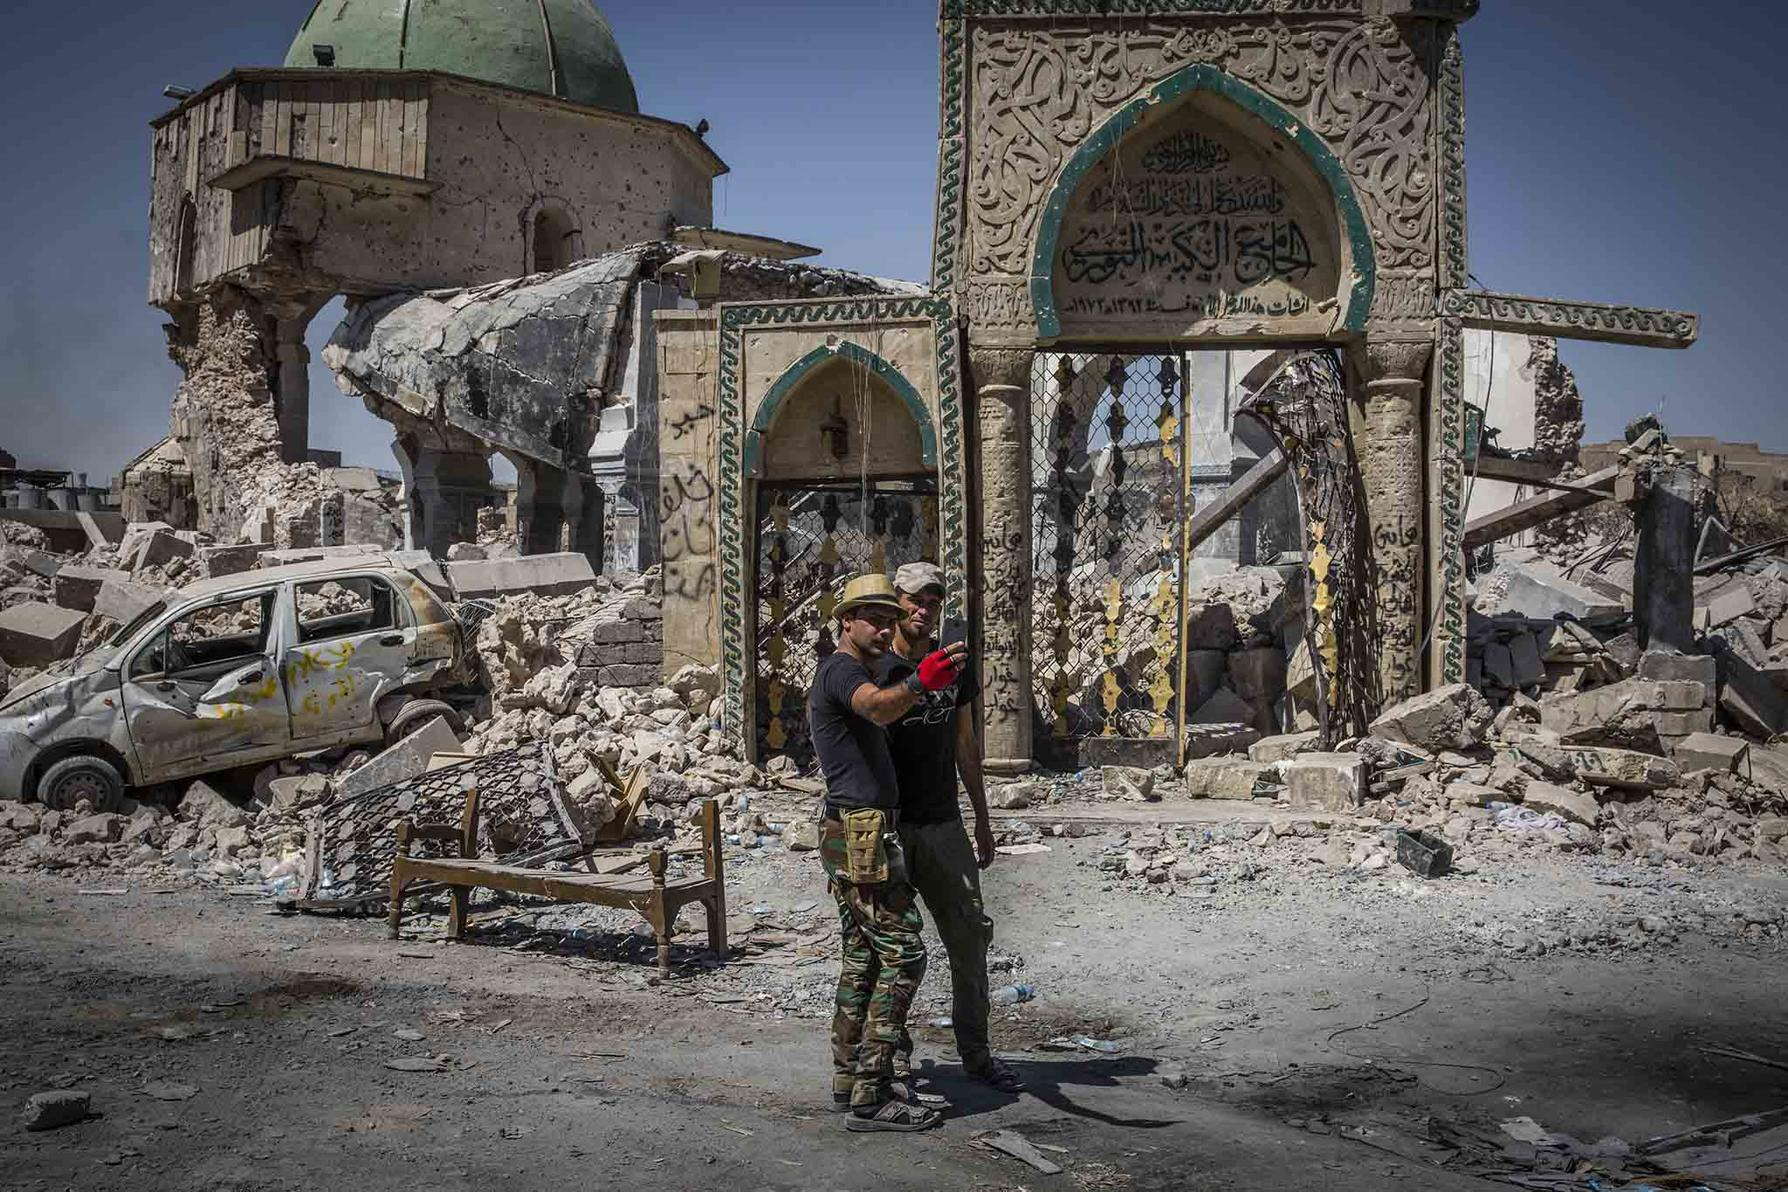 Iraq security personnel in front of the remains of the Al Nuri Grand Mosque in Mosul. (Ivor Prickett/The New York Times)